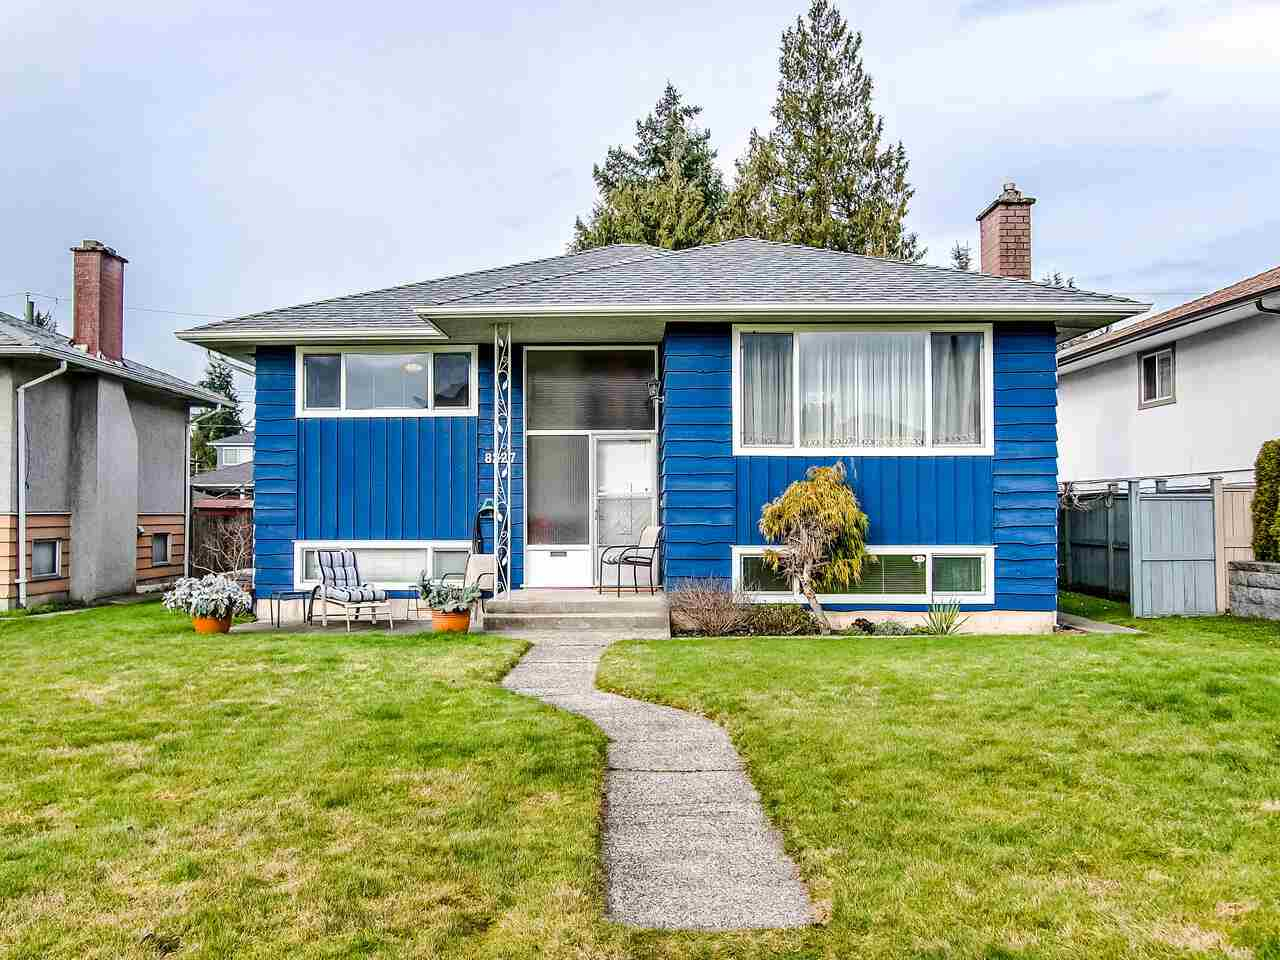 FEATURED LISTING: 8227 13TH Avenue Burnaby